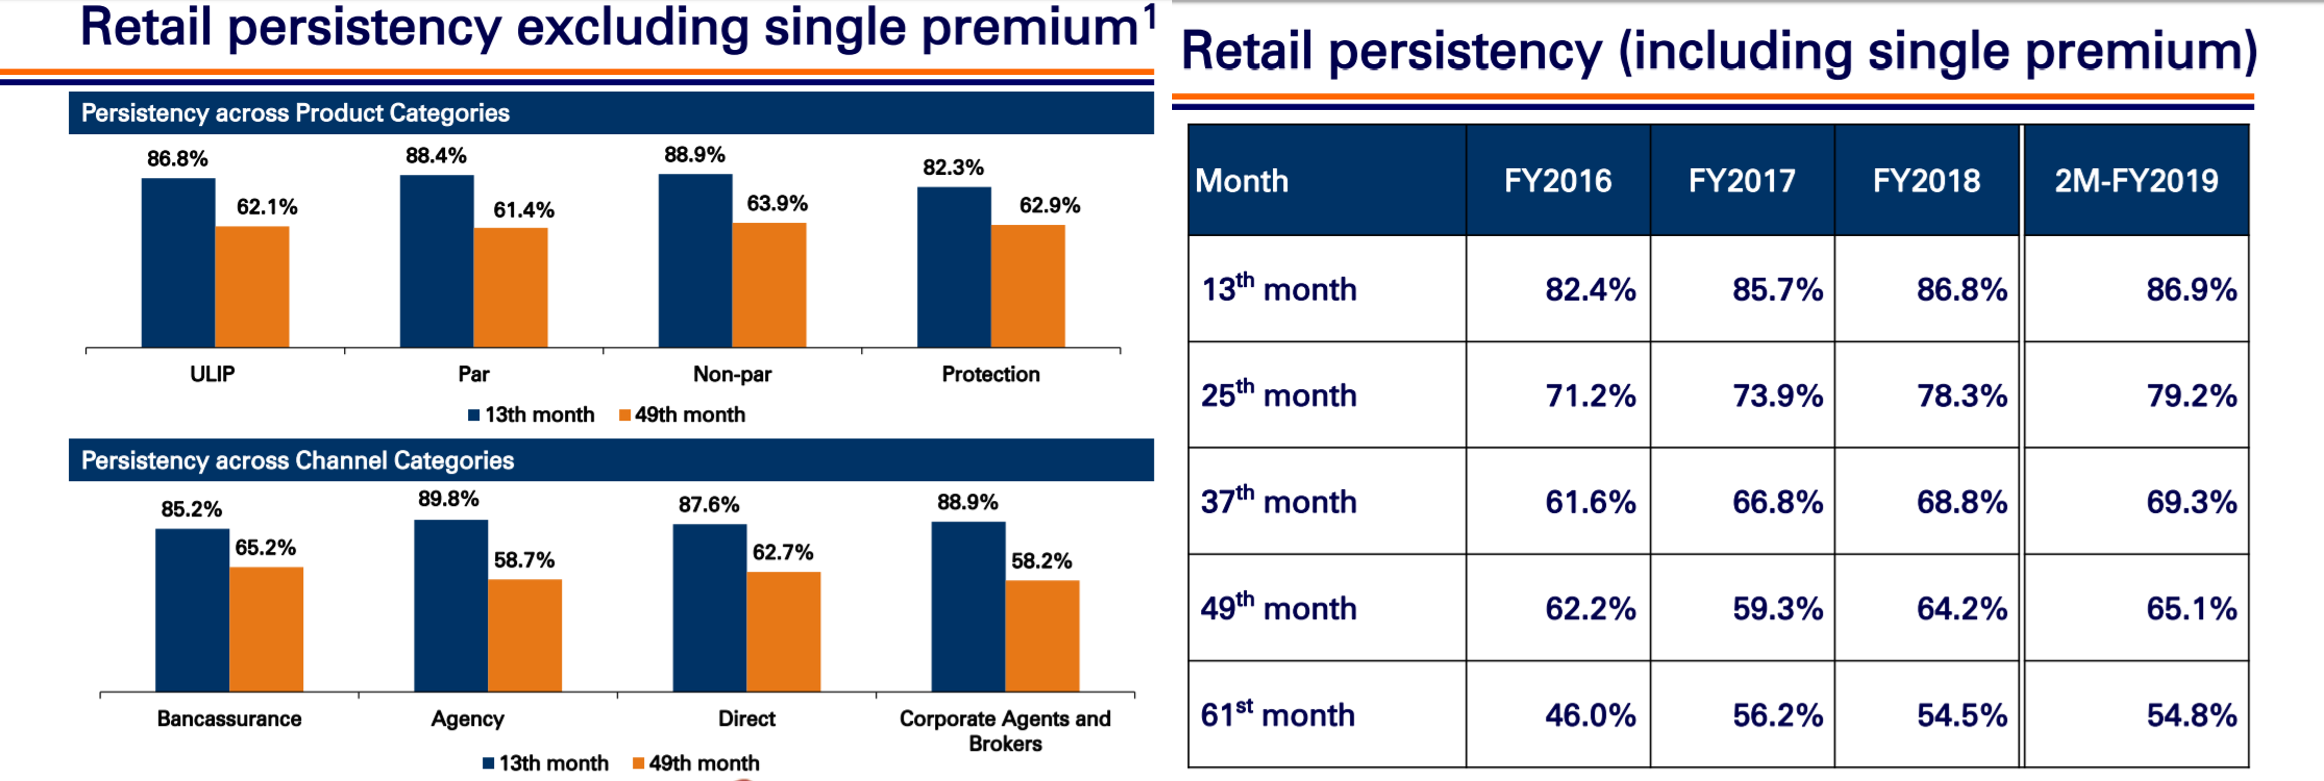 ICICI Pru Retail Persistncy Q1FY19.png